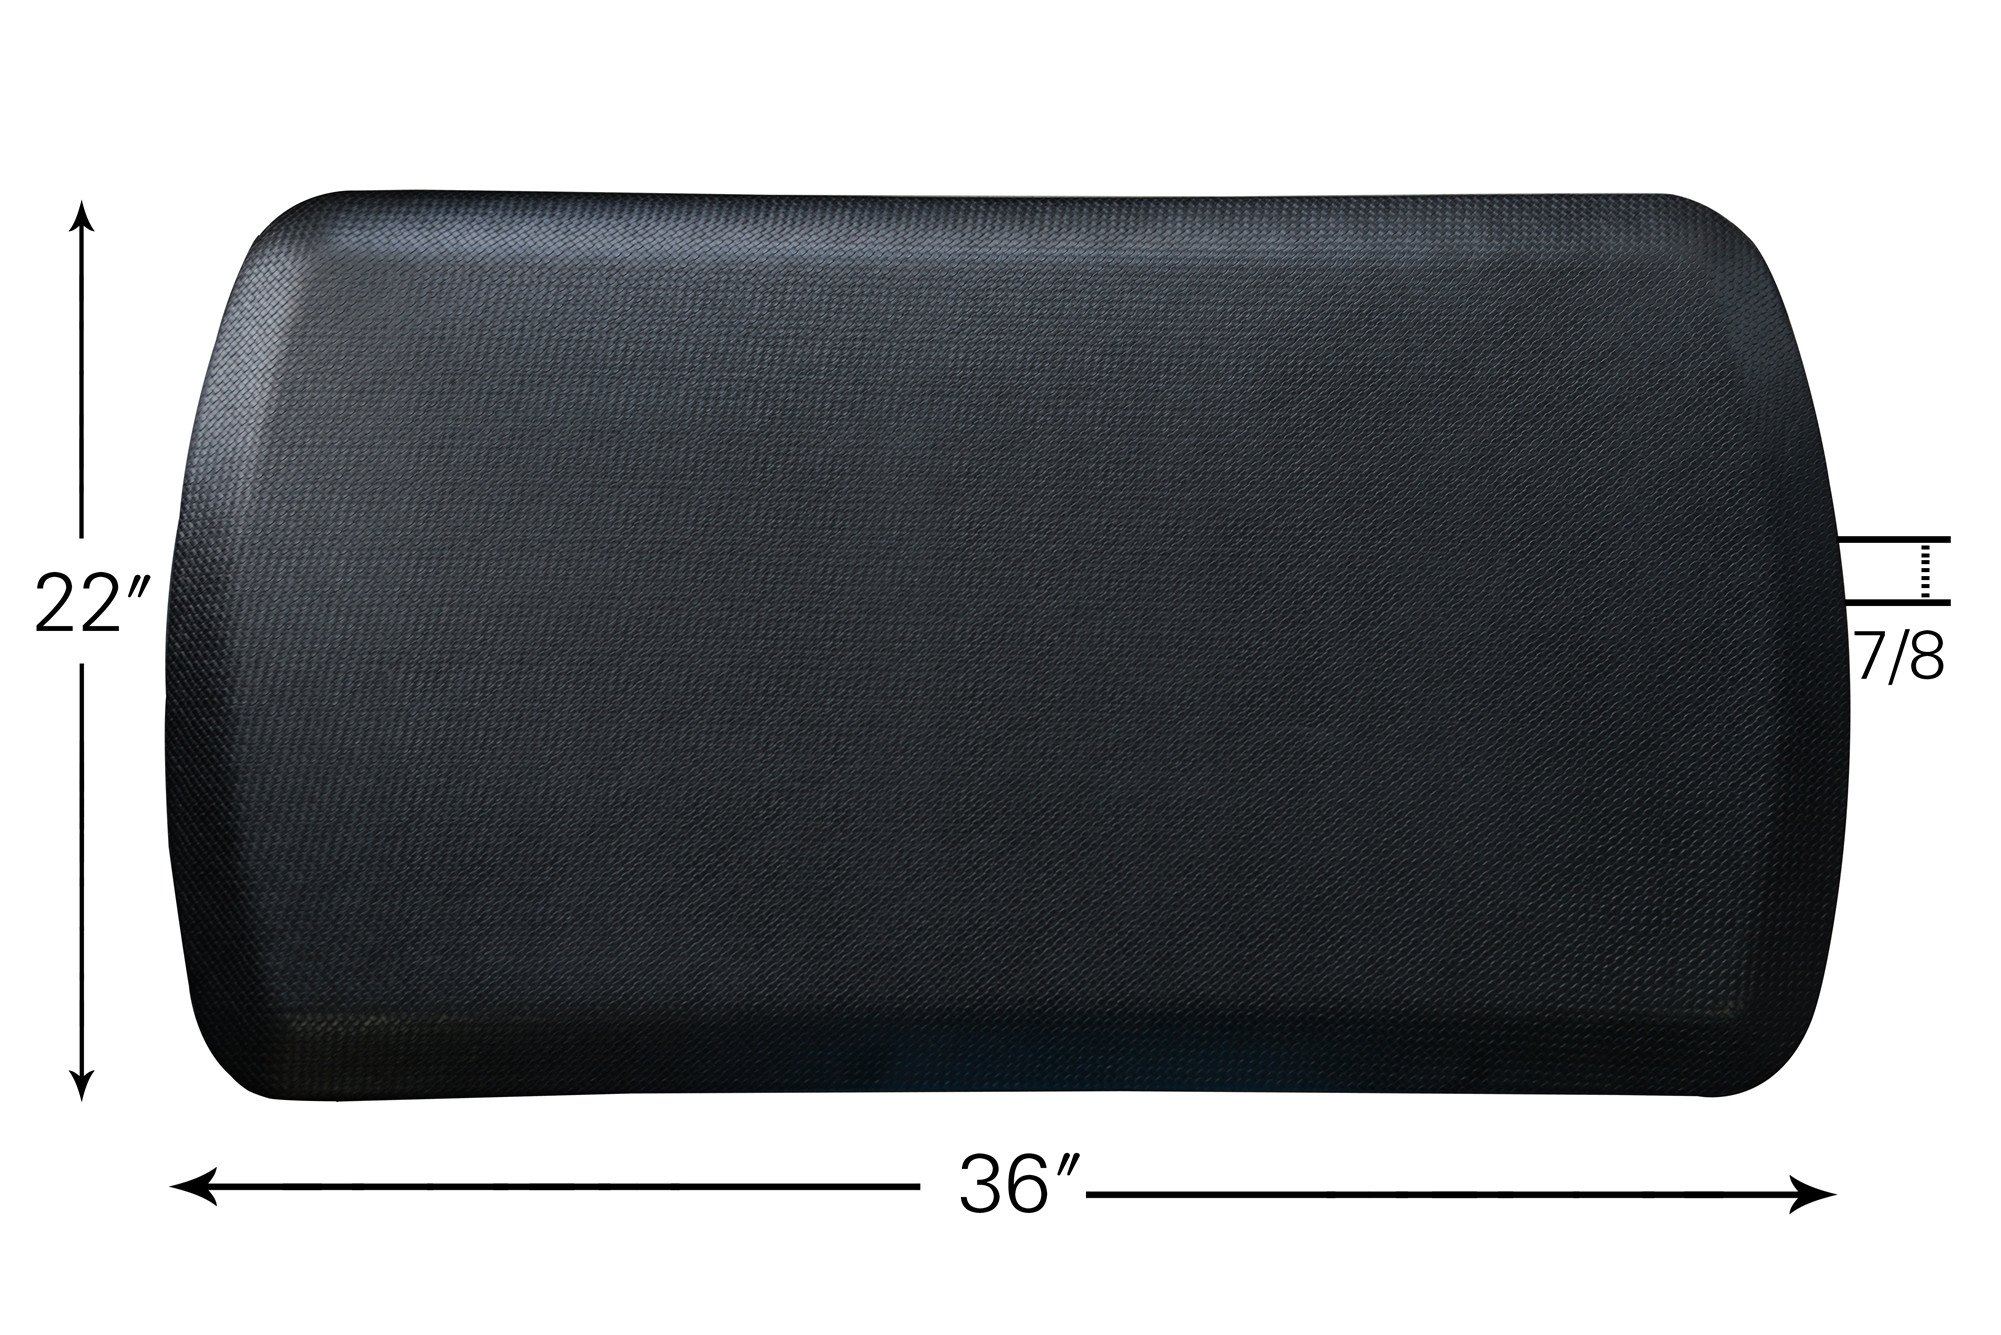 The Original 7/8'' Amcomfy Anti Fatigue Comfort Mat 22x36 In for Kitchens Office Standing Desks and Garages, Black